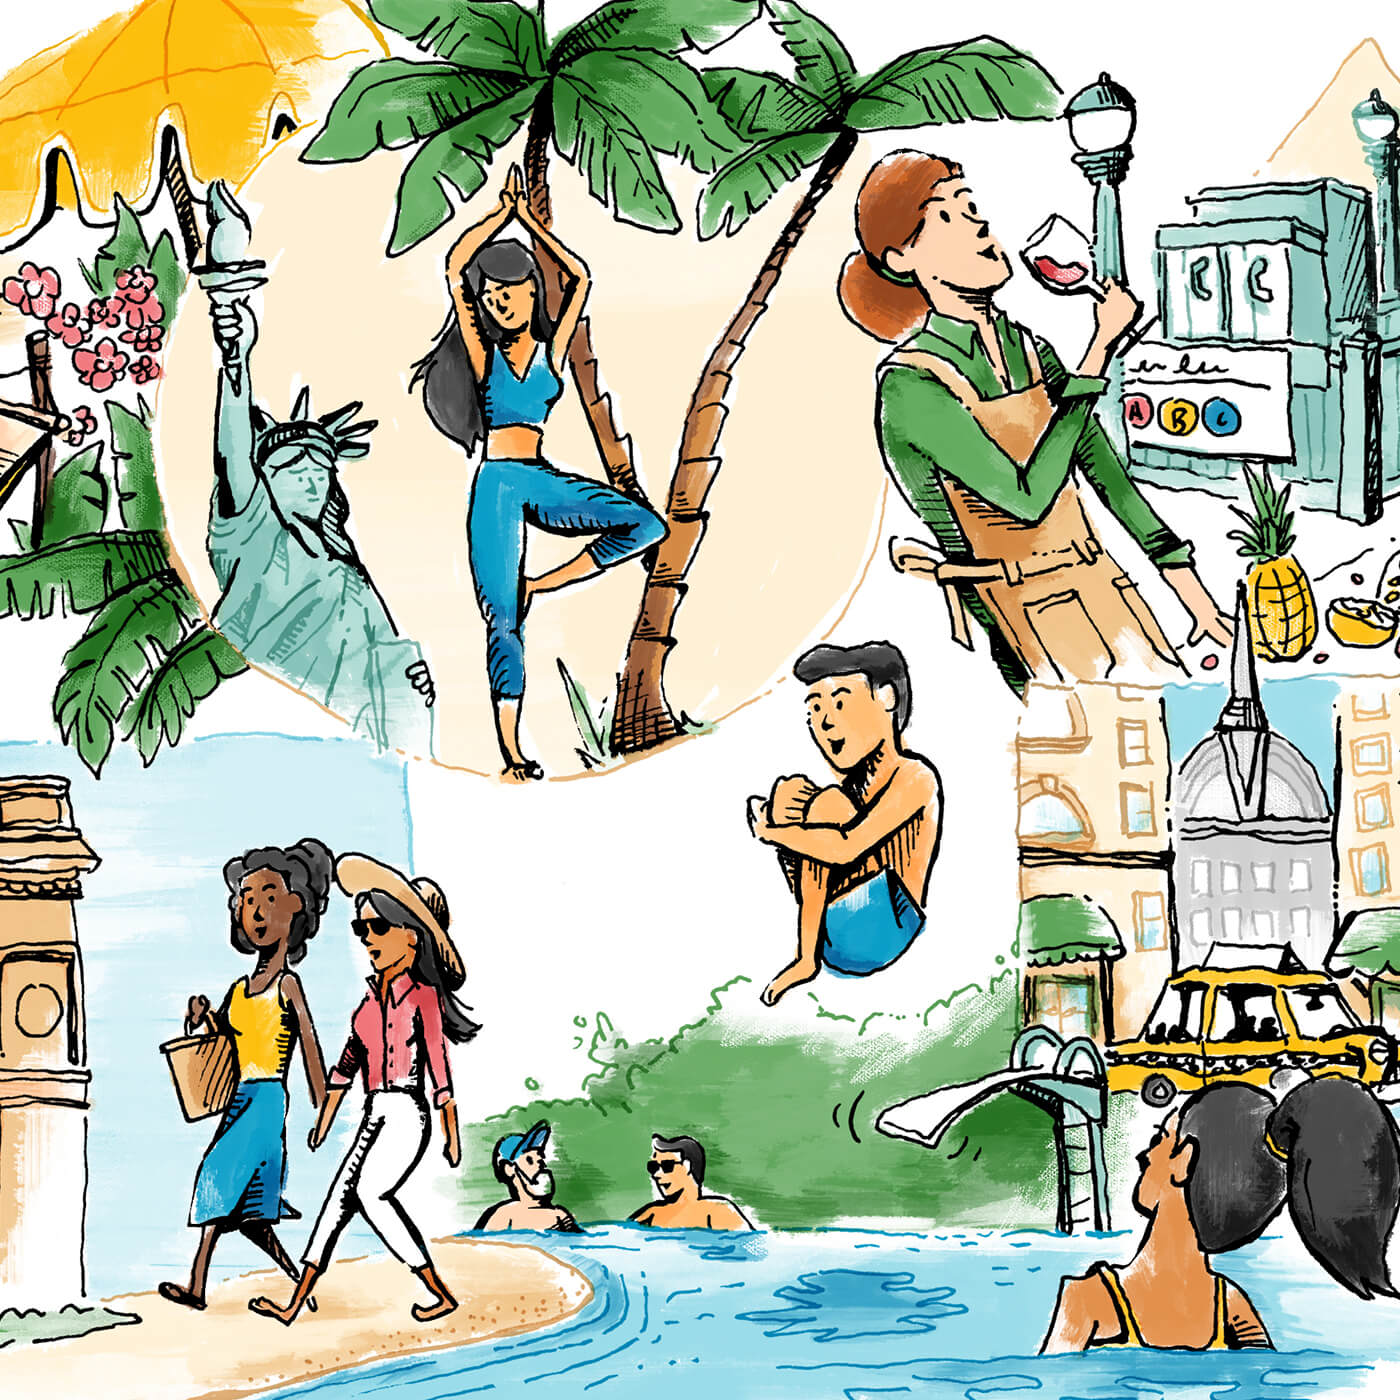 New York Magazine, Vacations - Illustrations for New York Magazine's series on tips and tricks for New Yorkers escaping winter in the city for warm, Caribbean vacations.View Project →